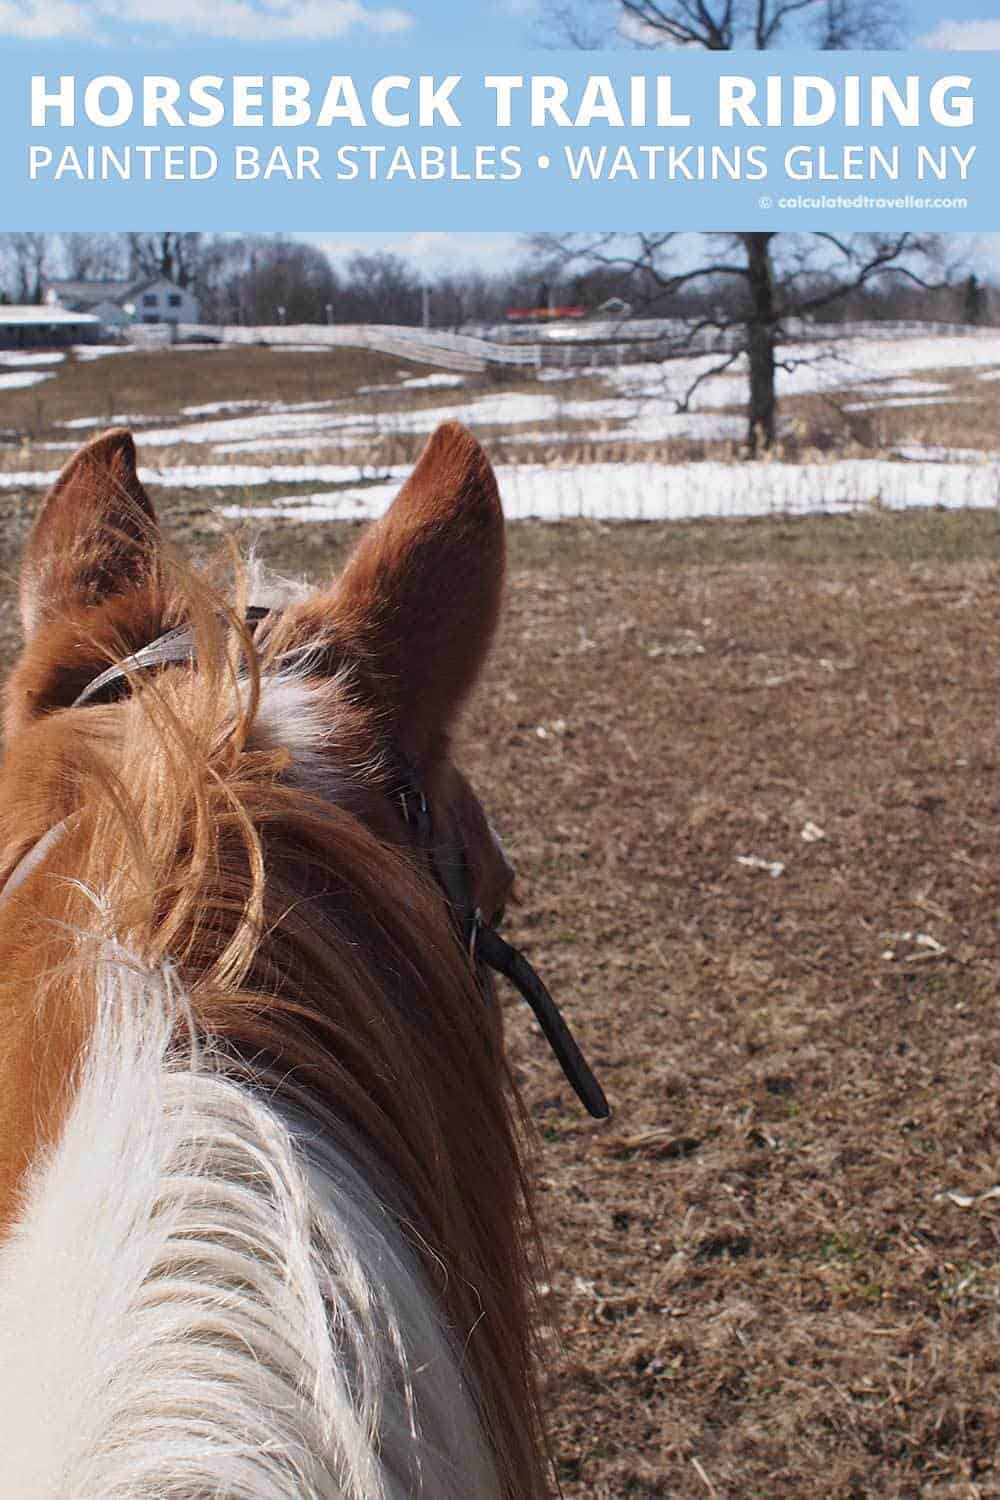 Horseback Riding with Painted Bar Stables at Watkins Glen NY | #FIngerLakes #NewYork #USA #outdoors #horse #trail #riding #travel